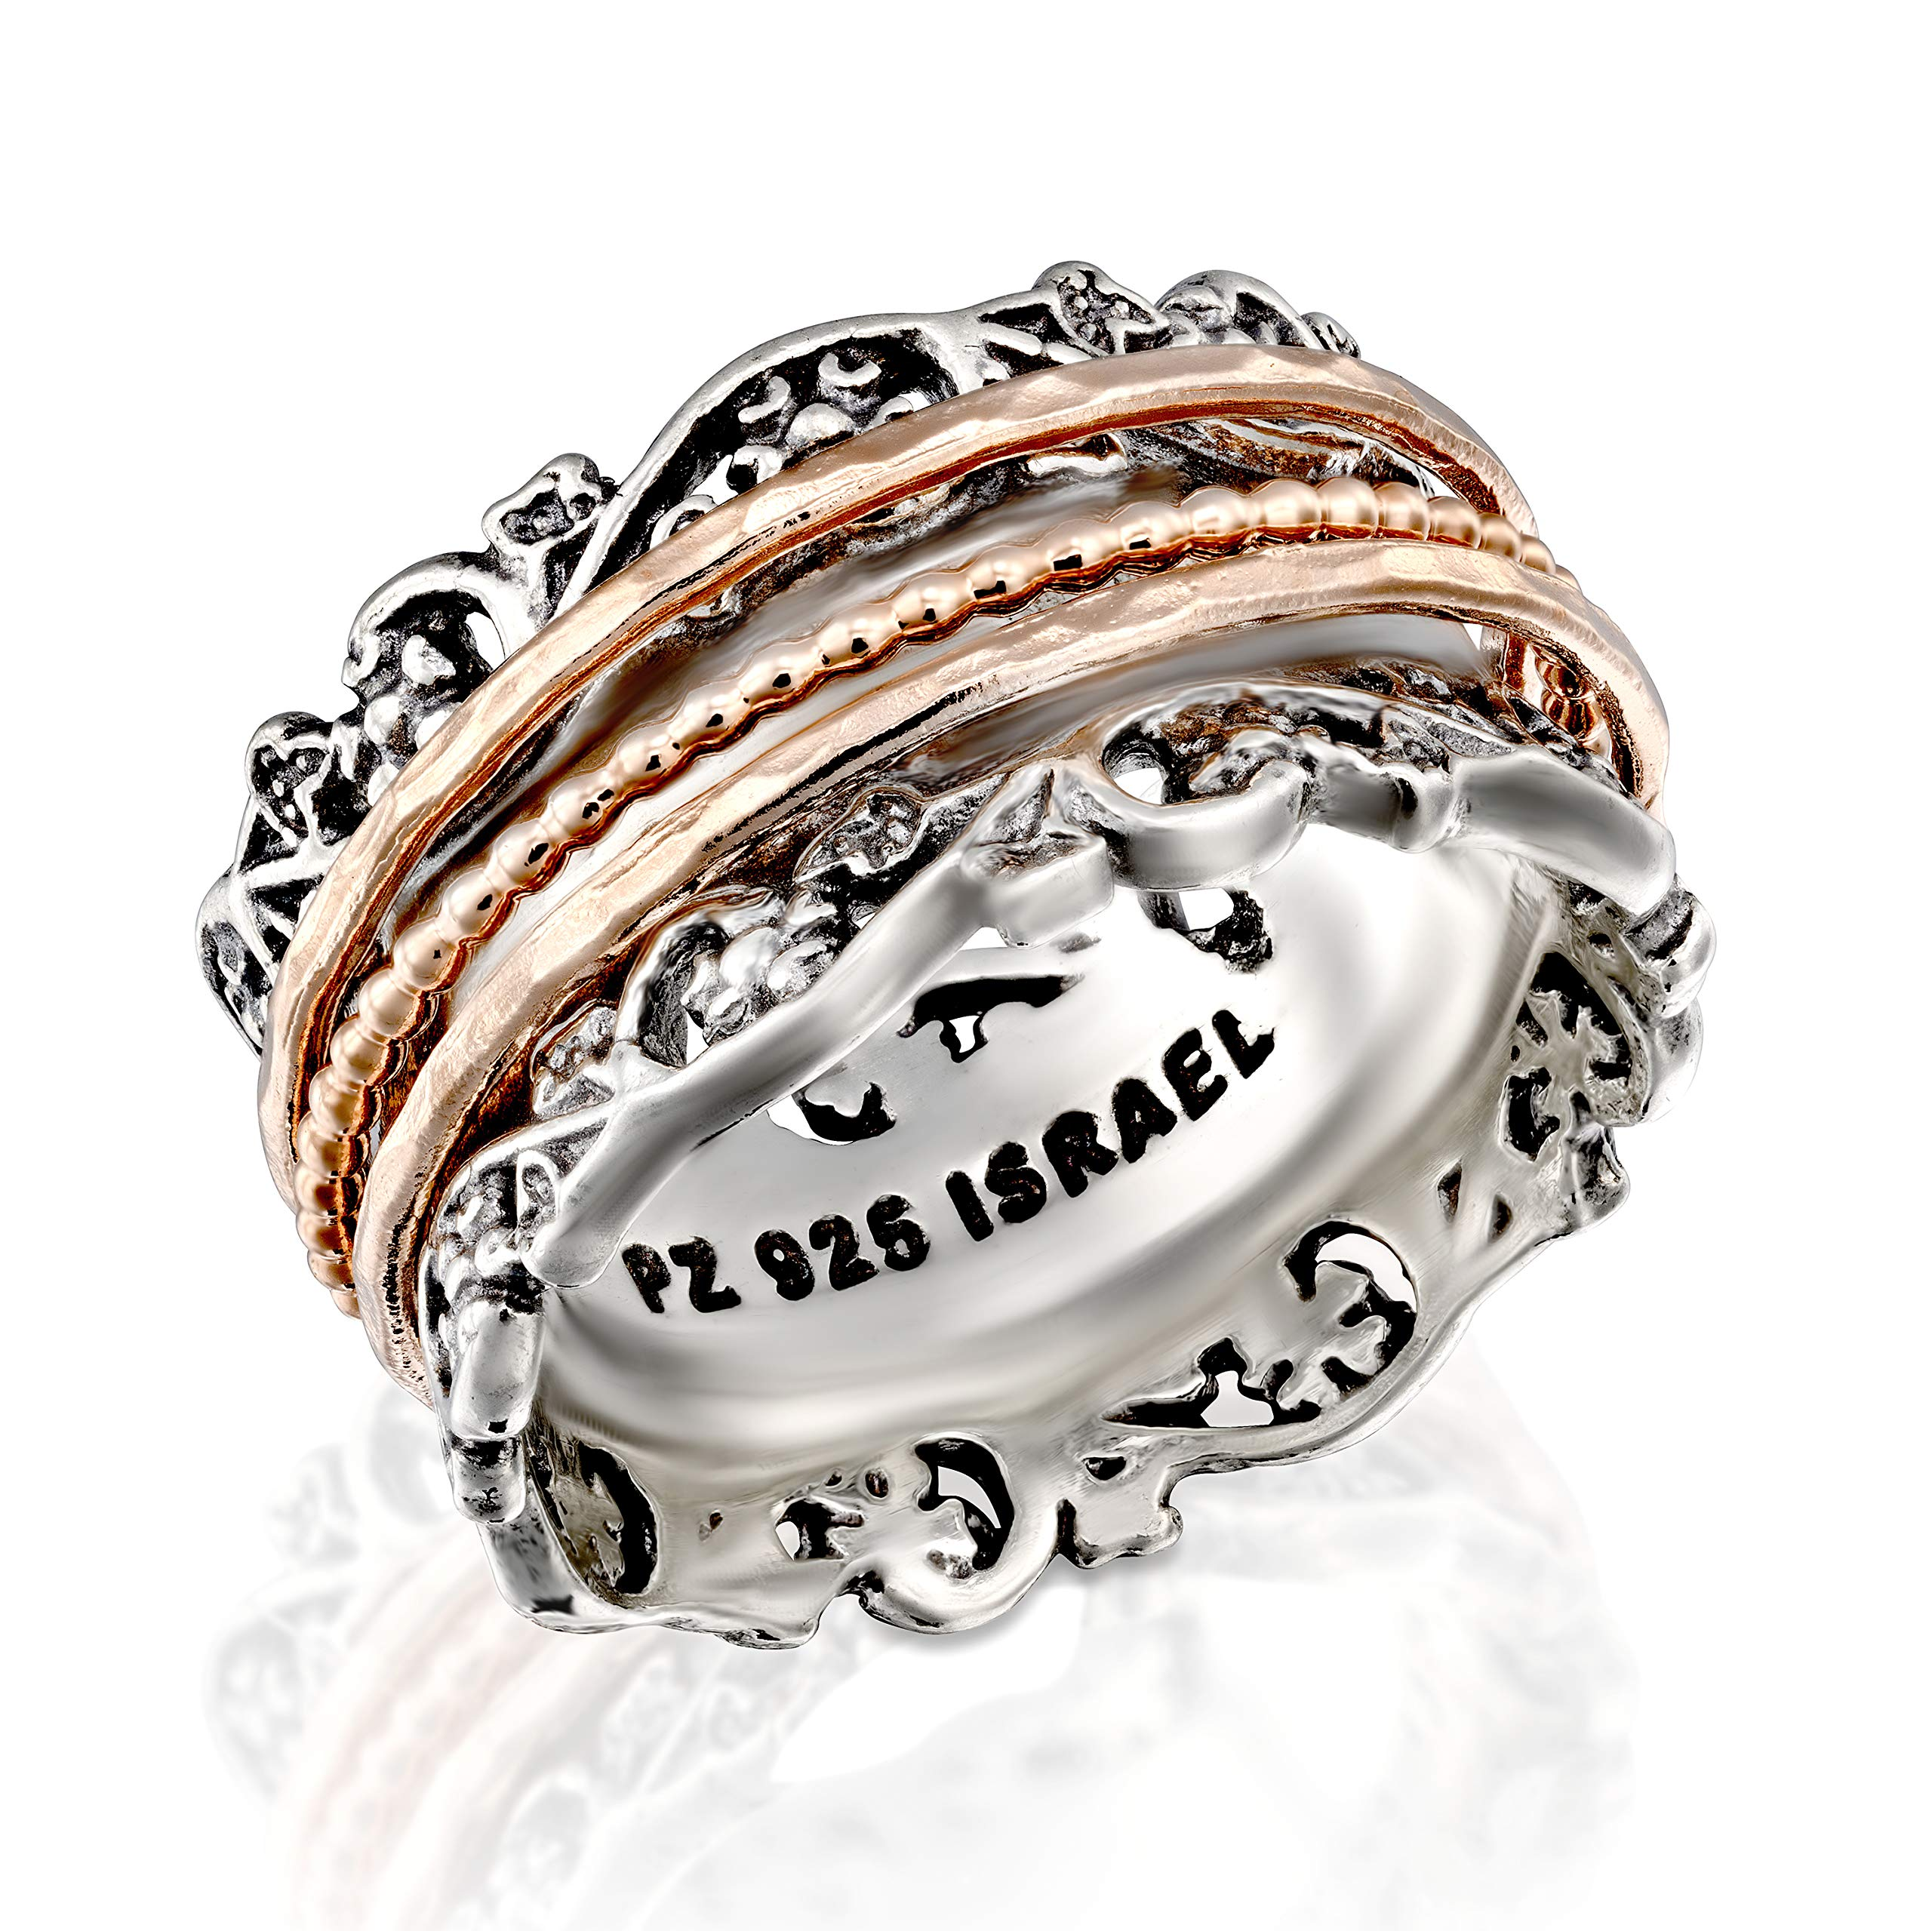 Paz Creations .925 Sterling Silver and Rose Gold Over Silver Spinner Ring (7), Made in Israel by PZ